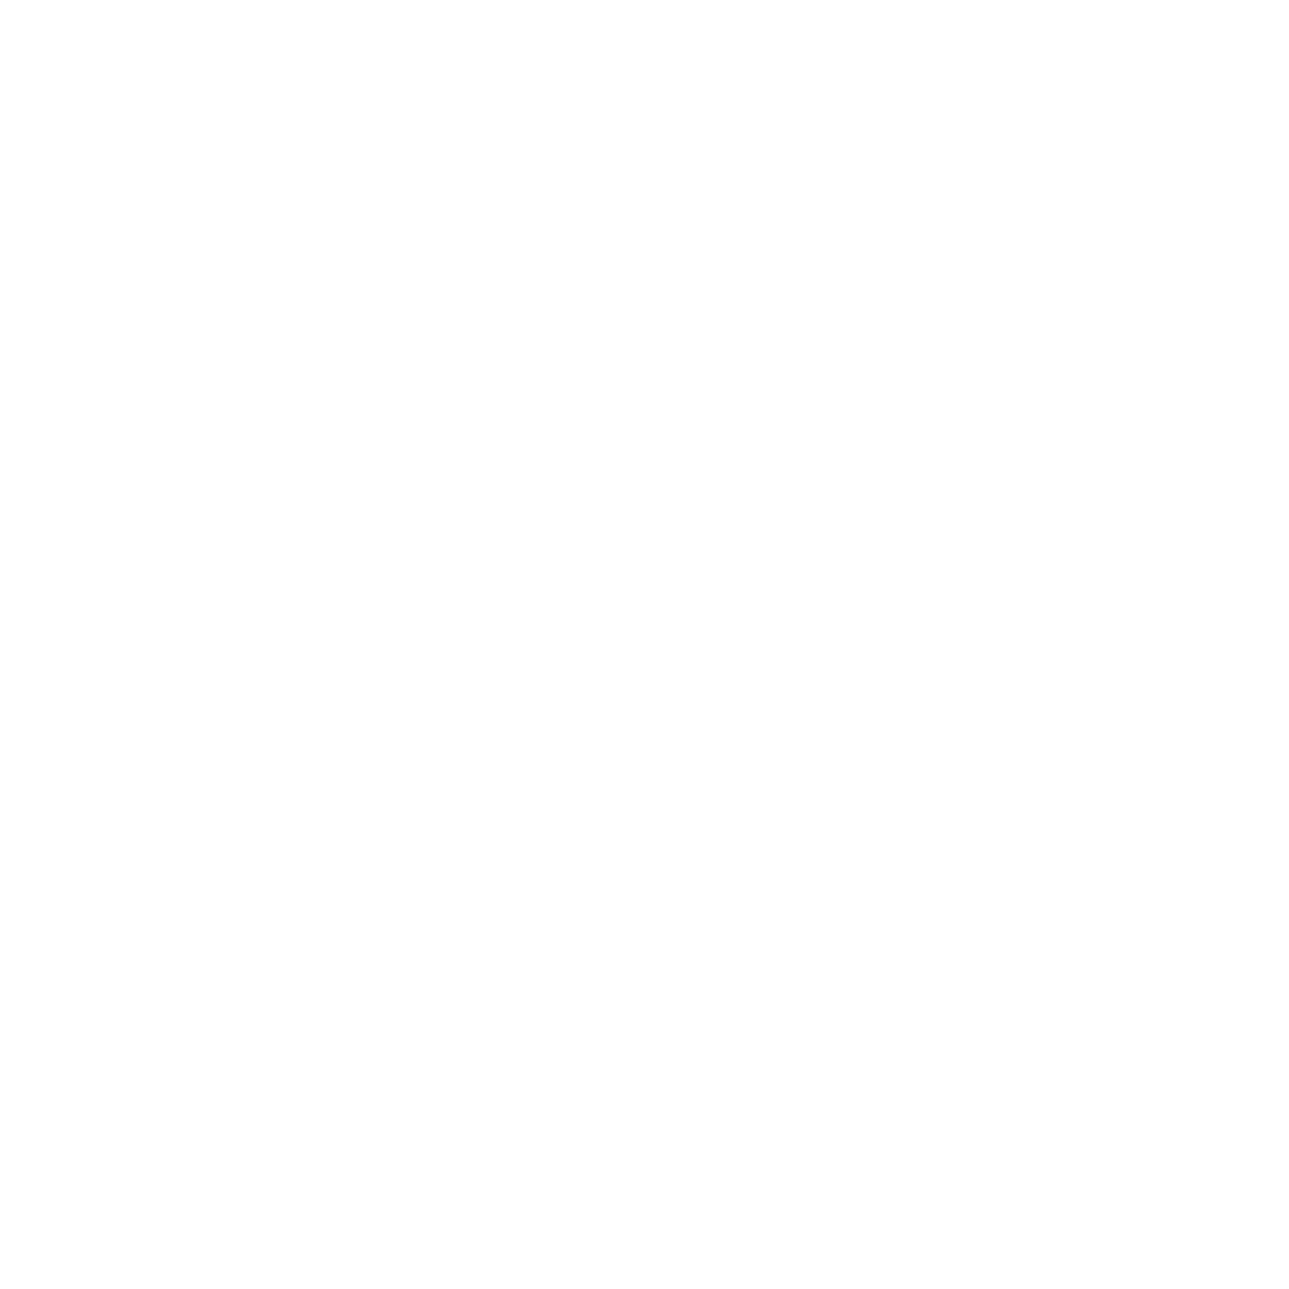 The Depot Art Gallery